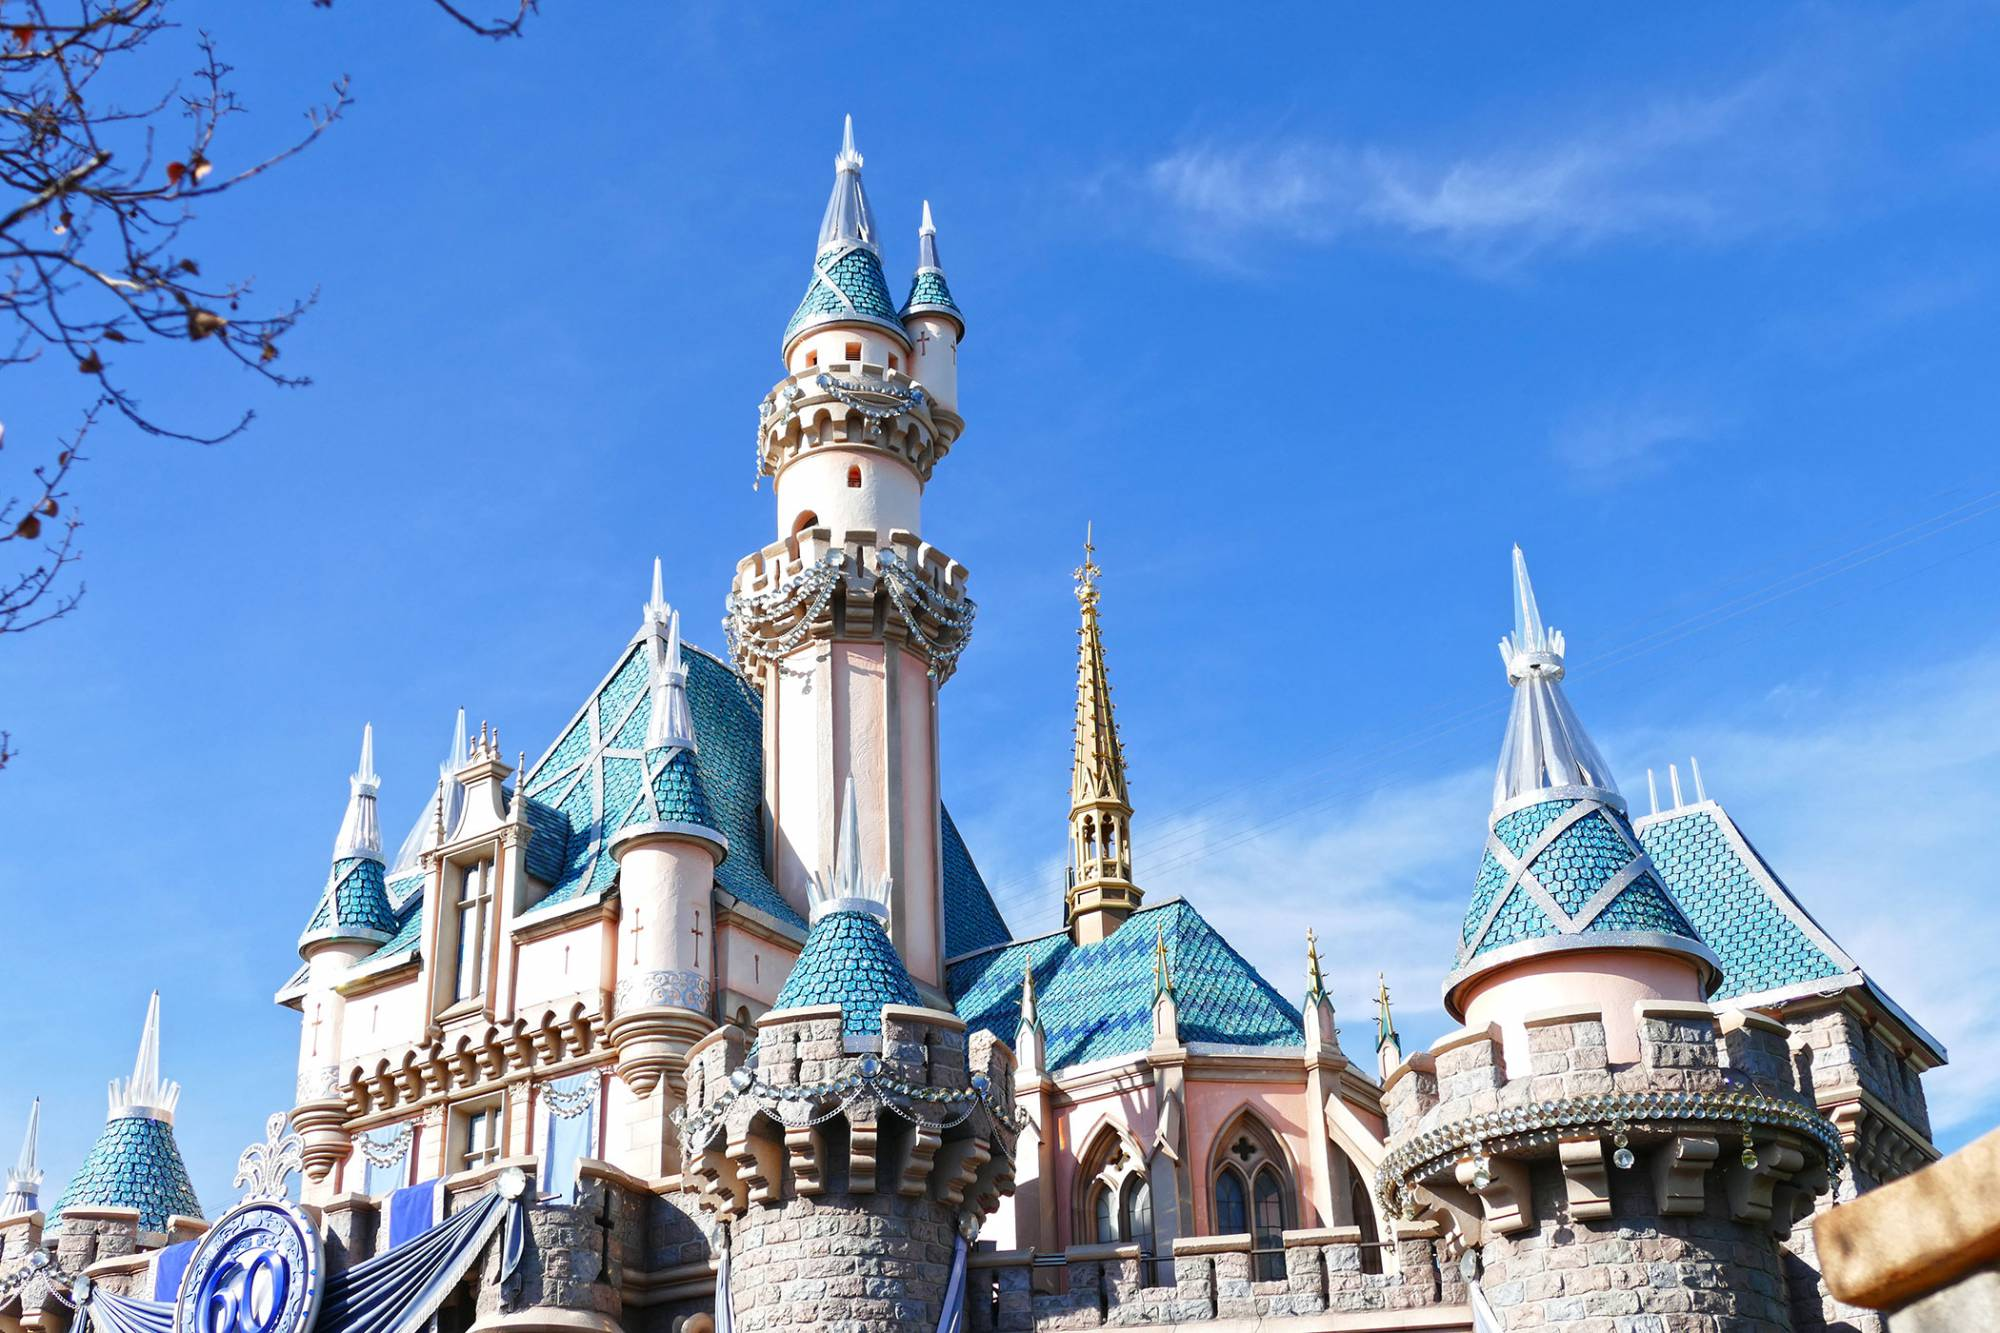 The Top 10 Things to Look Forward to at Disneyland | PassPorter.com